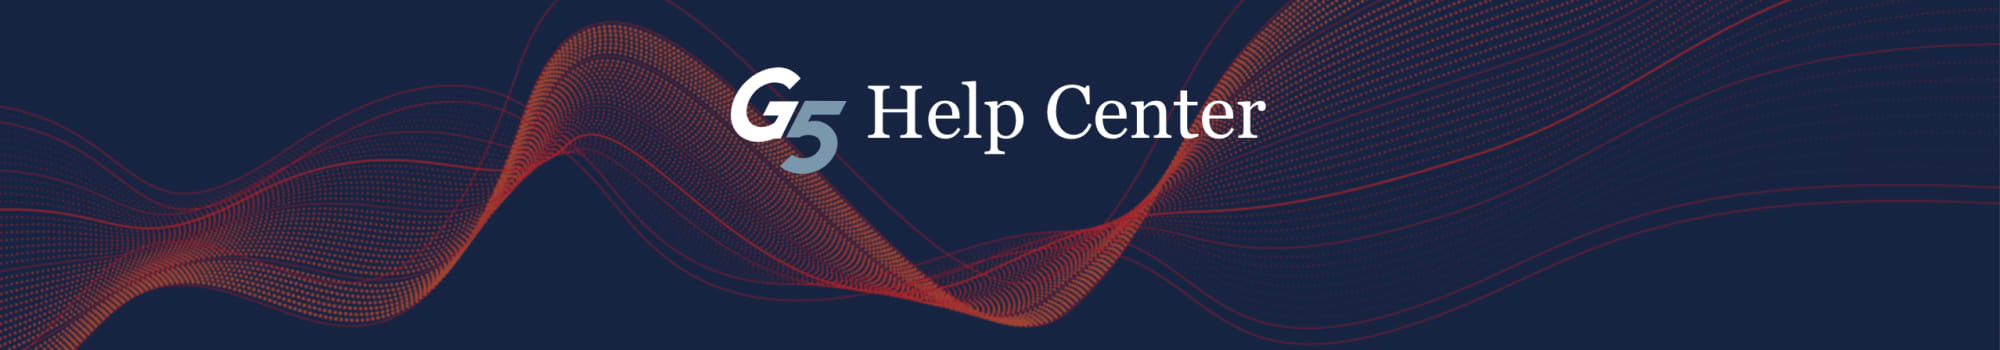 Welcome to G5 Help Center